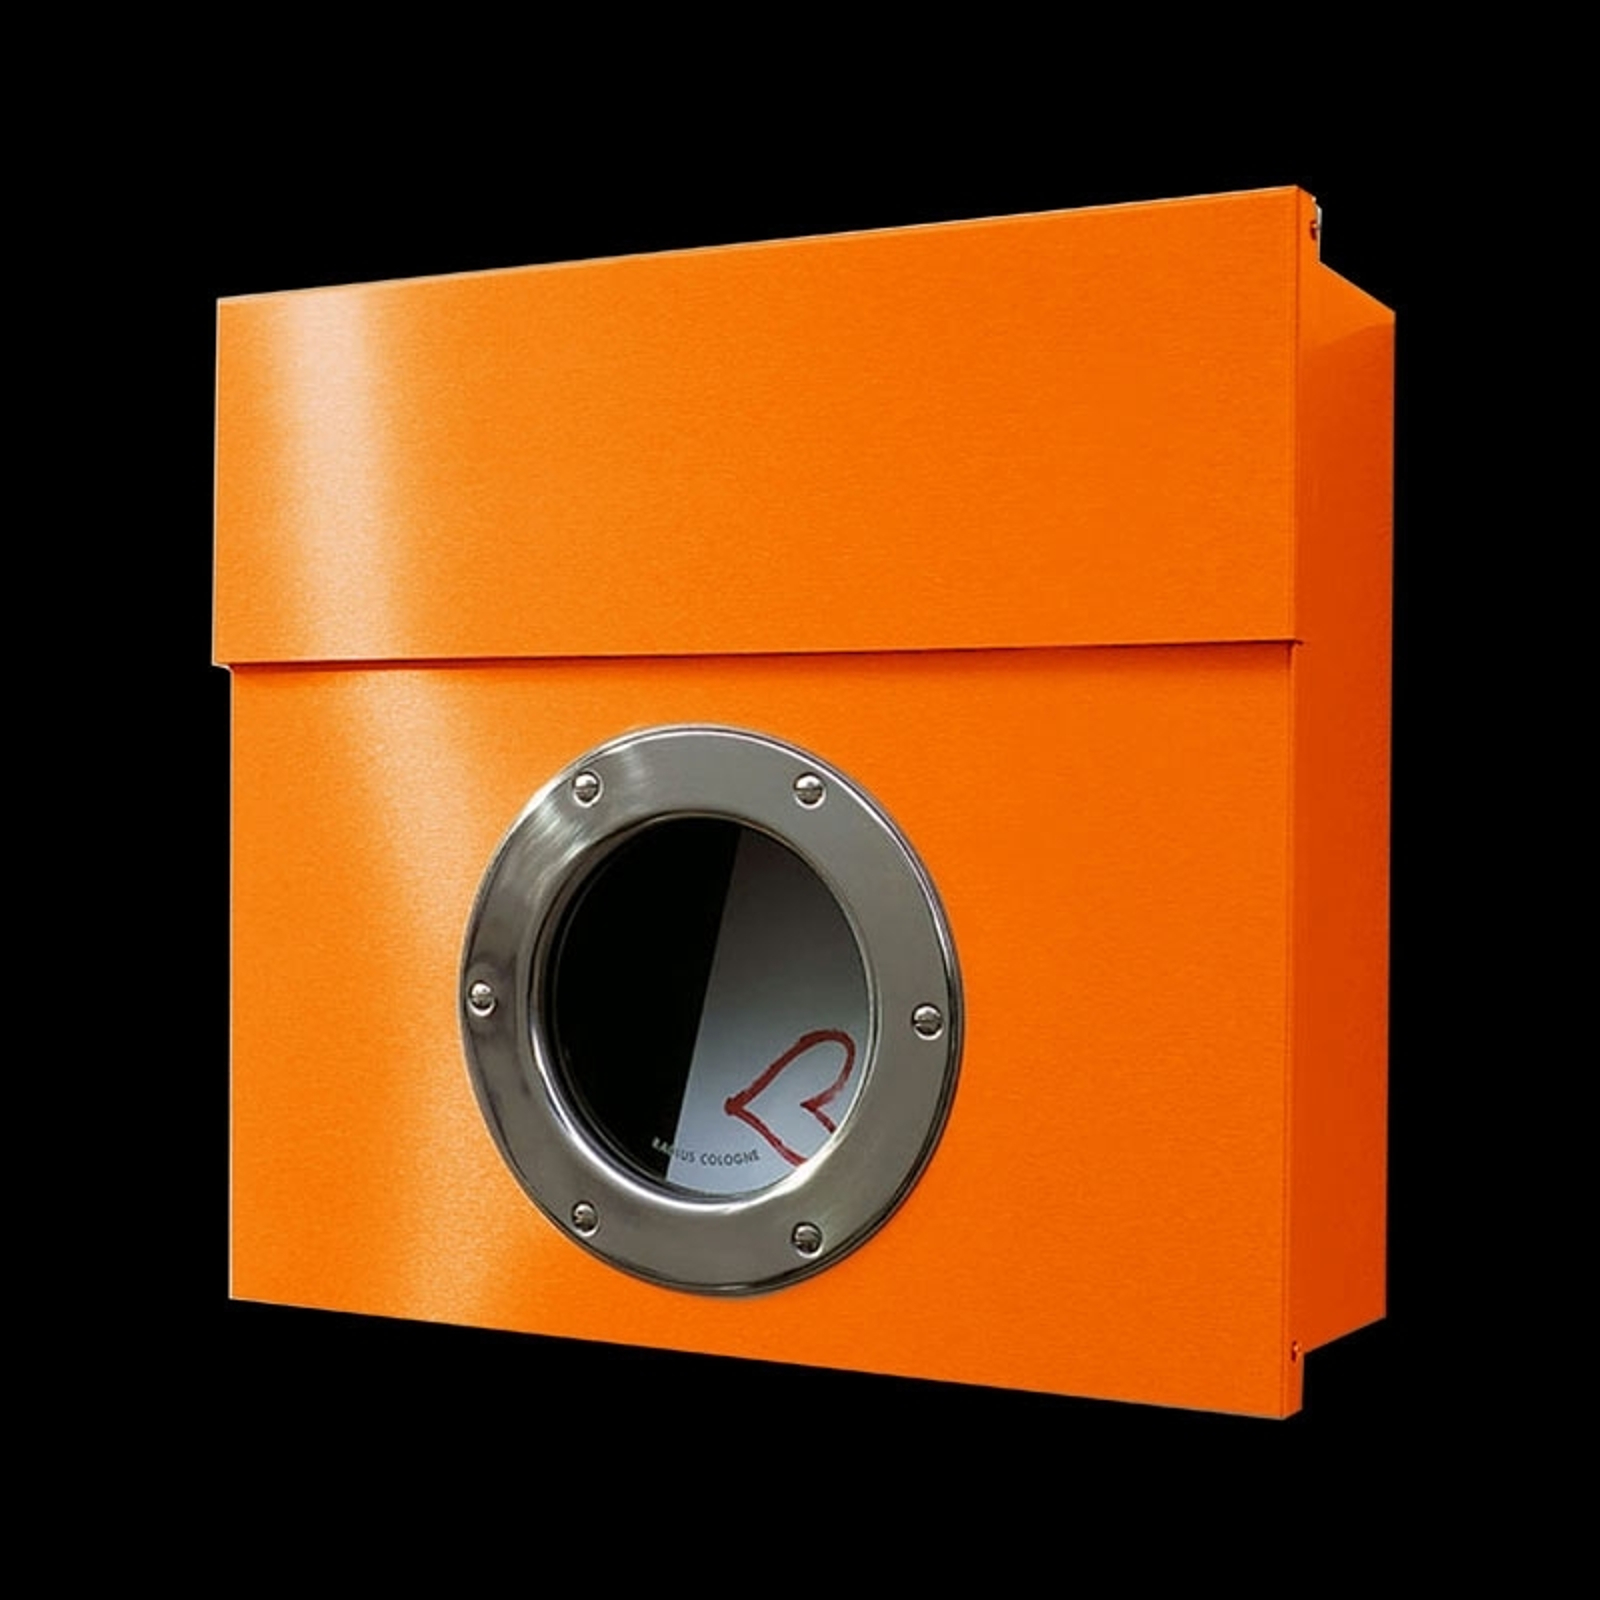 Design-Briefkasten Letterman I, orange